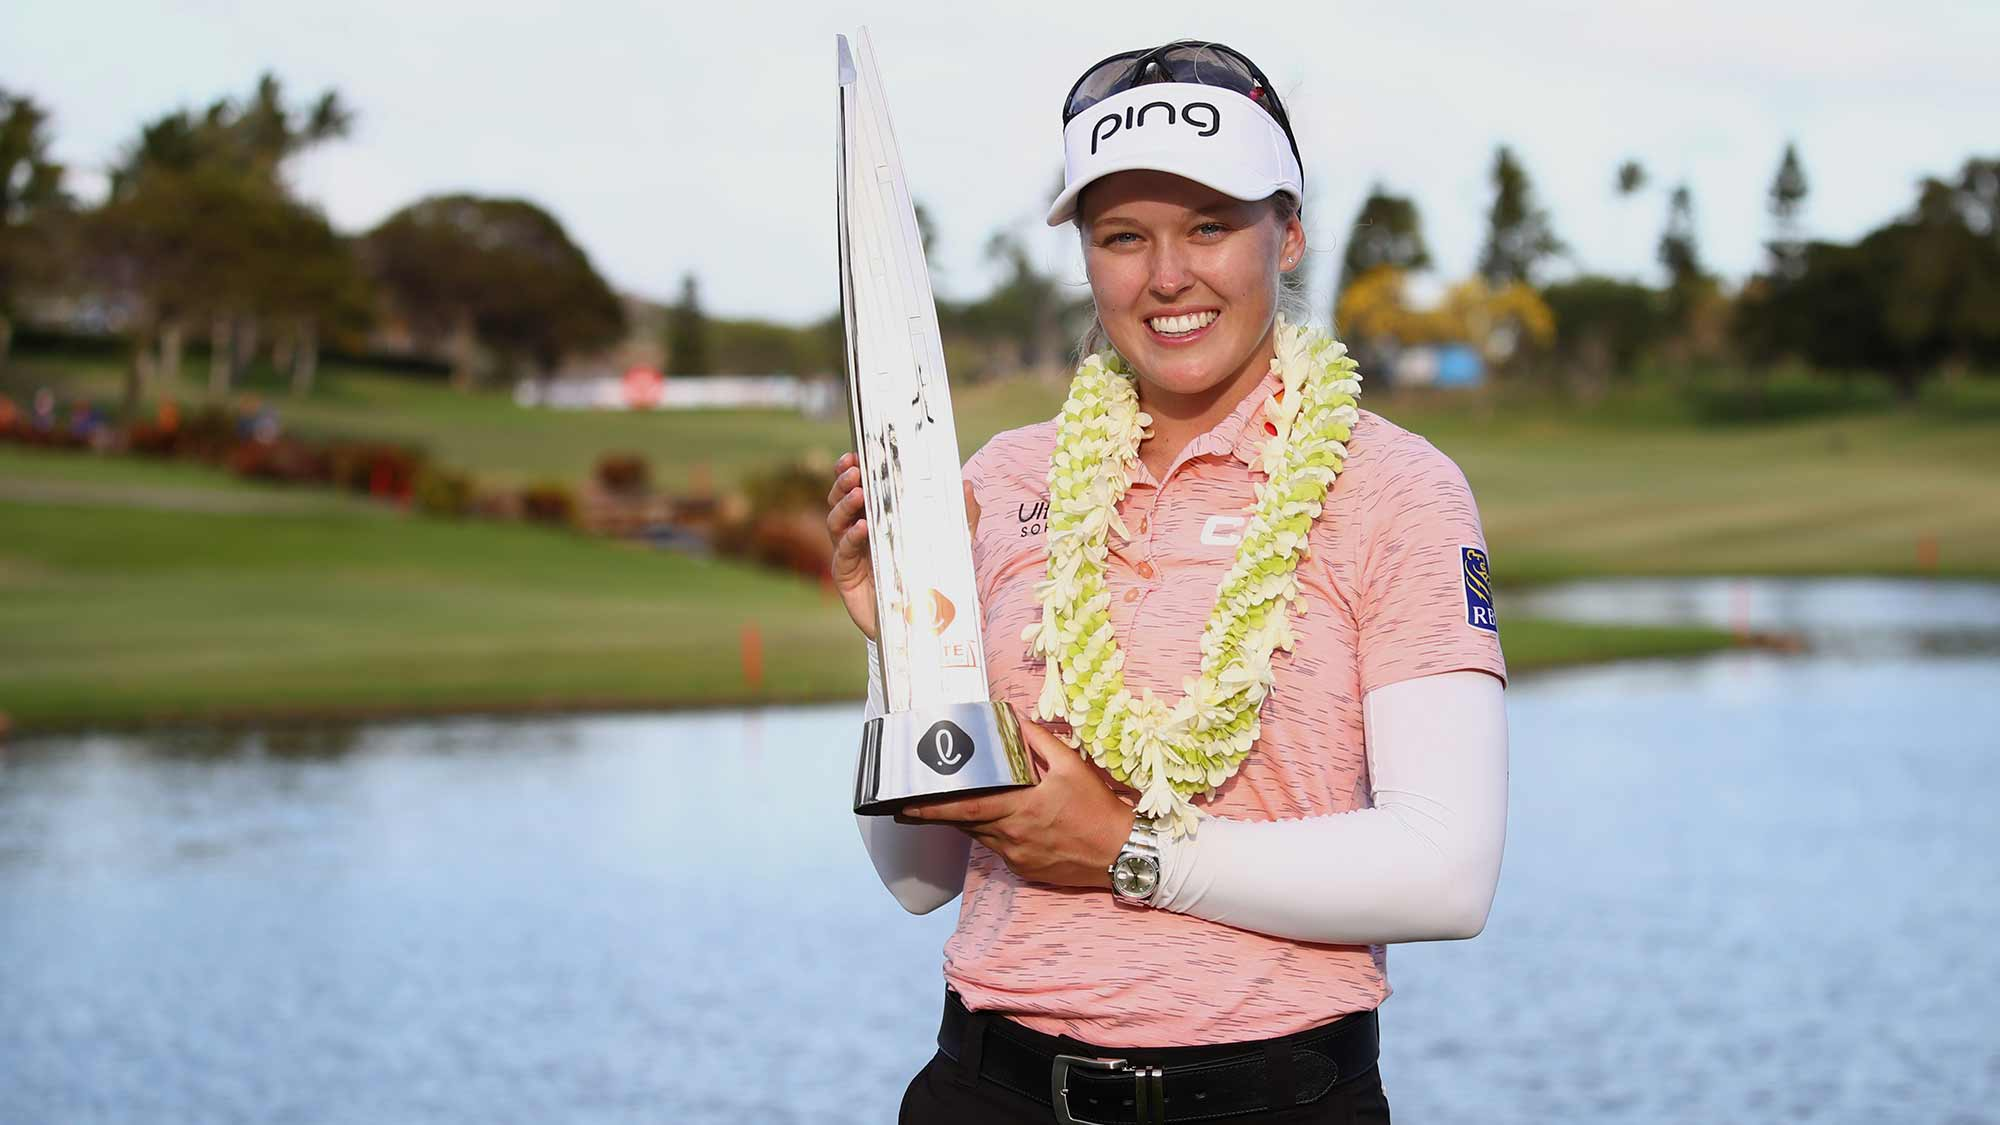 Two-time defending champion Brooke Henderson